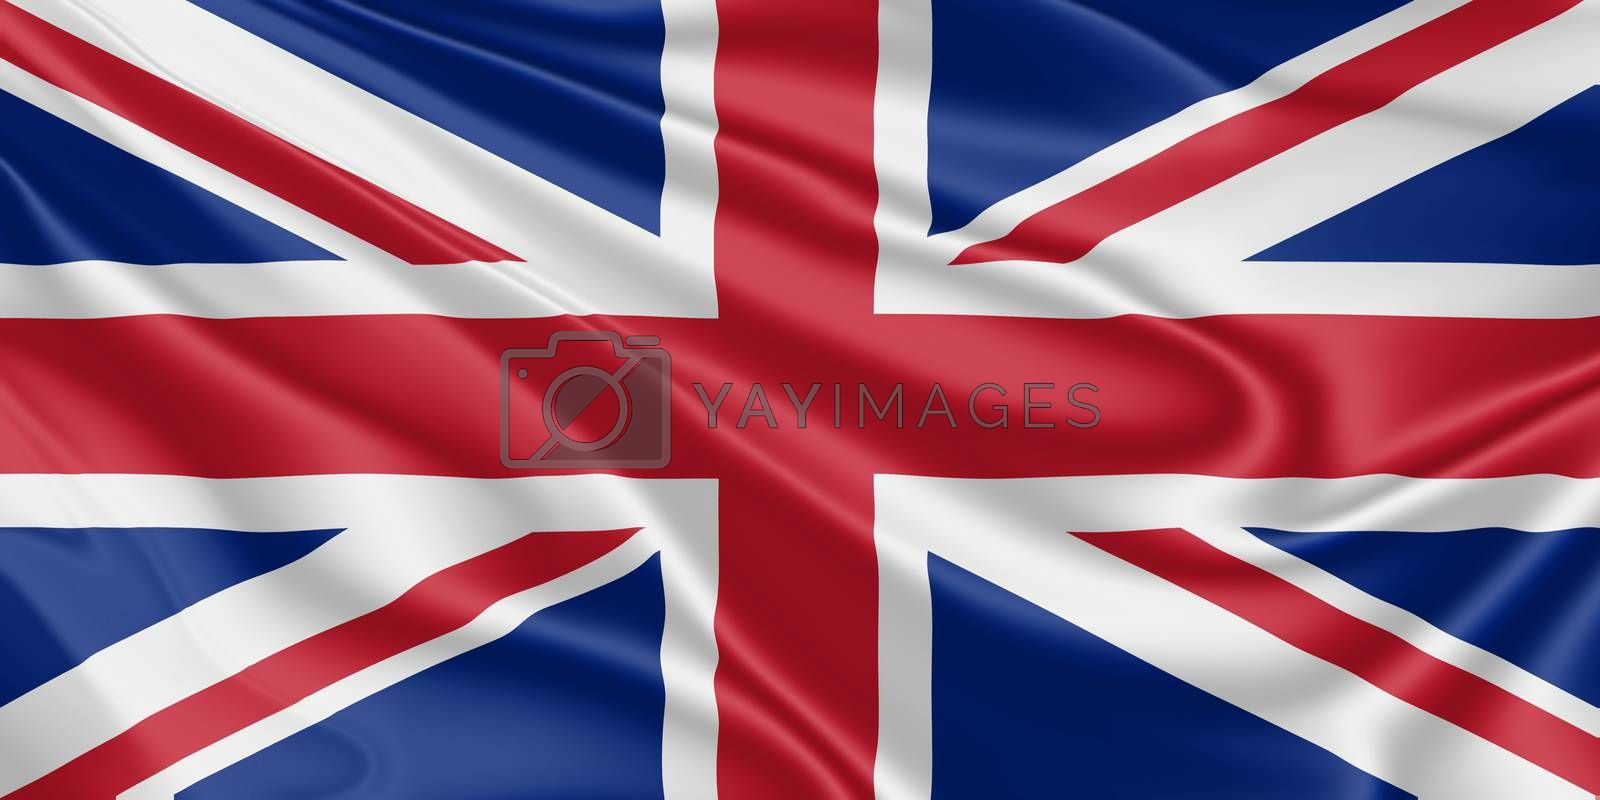 National flag of the United Kingdom fluttering in the wind in 3D illustration